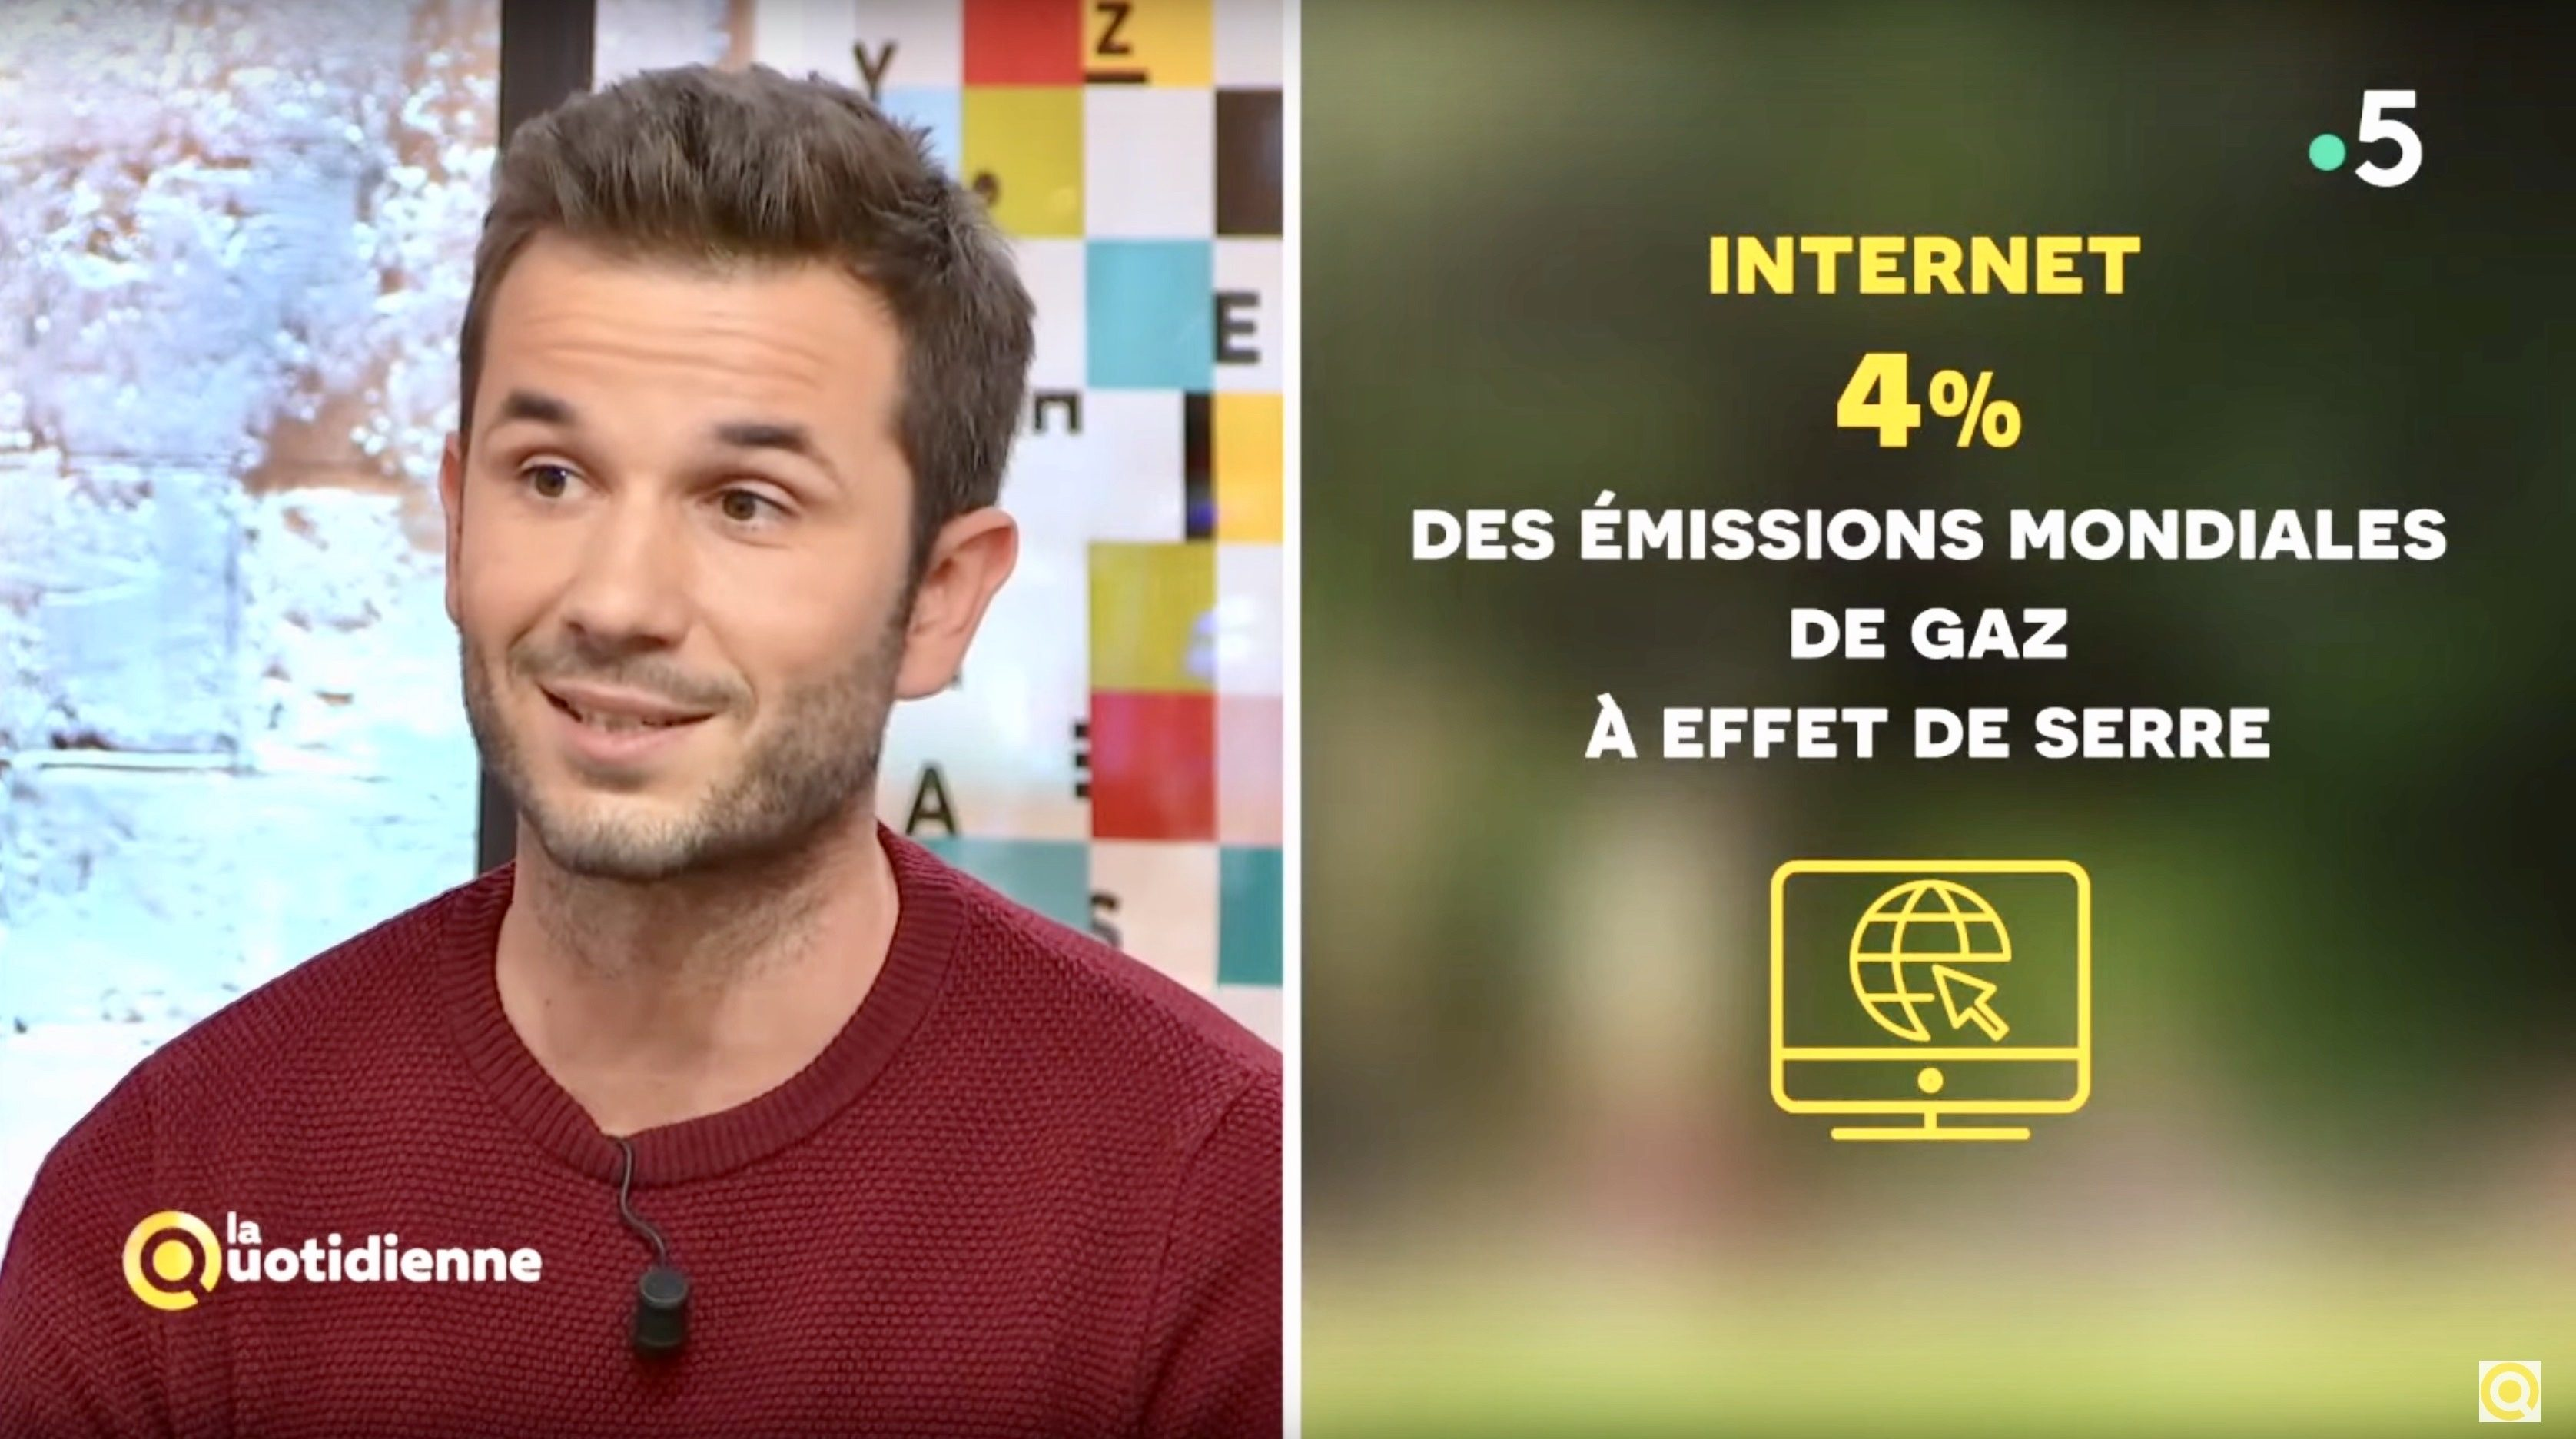 Réduire la pollution du Web